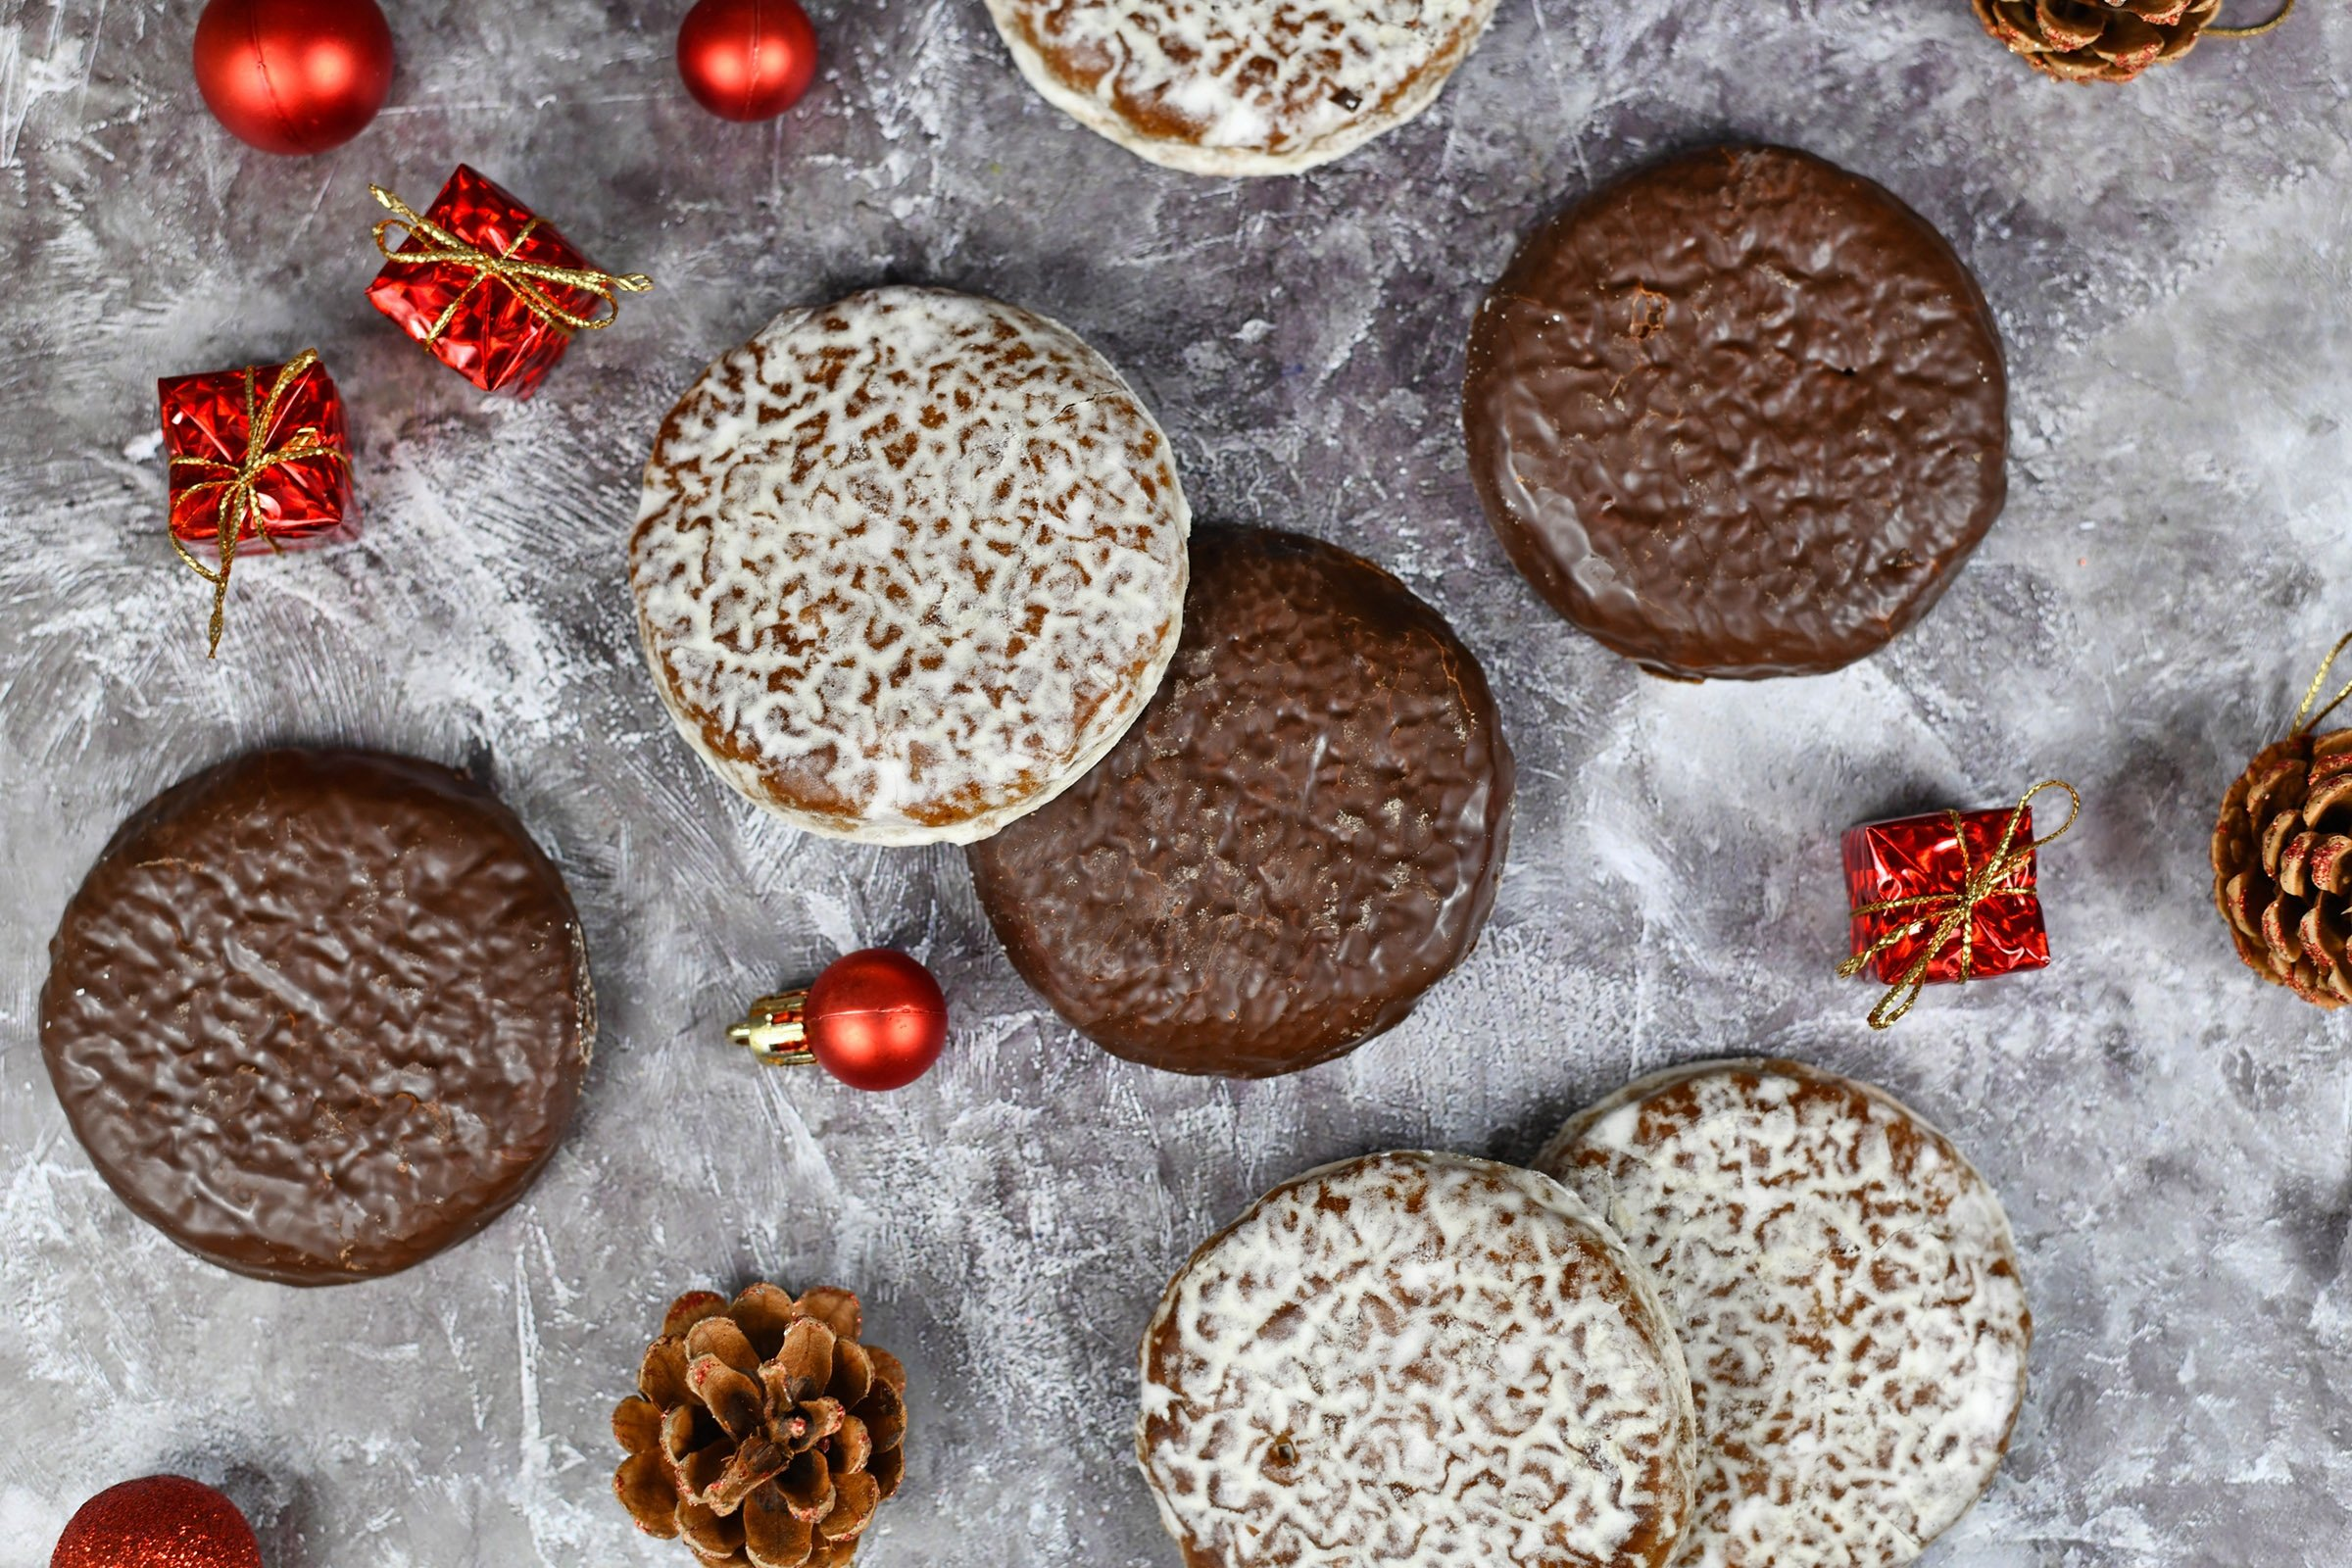 You can decorate your Lebkuchen, German round gingerbread cookies, with a white or milk chocolate glaze. (Shutterstock Photo)